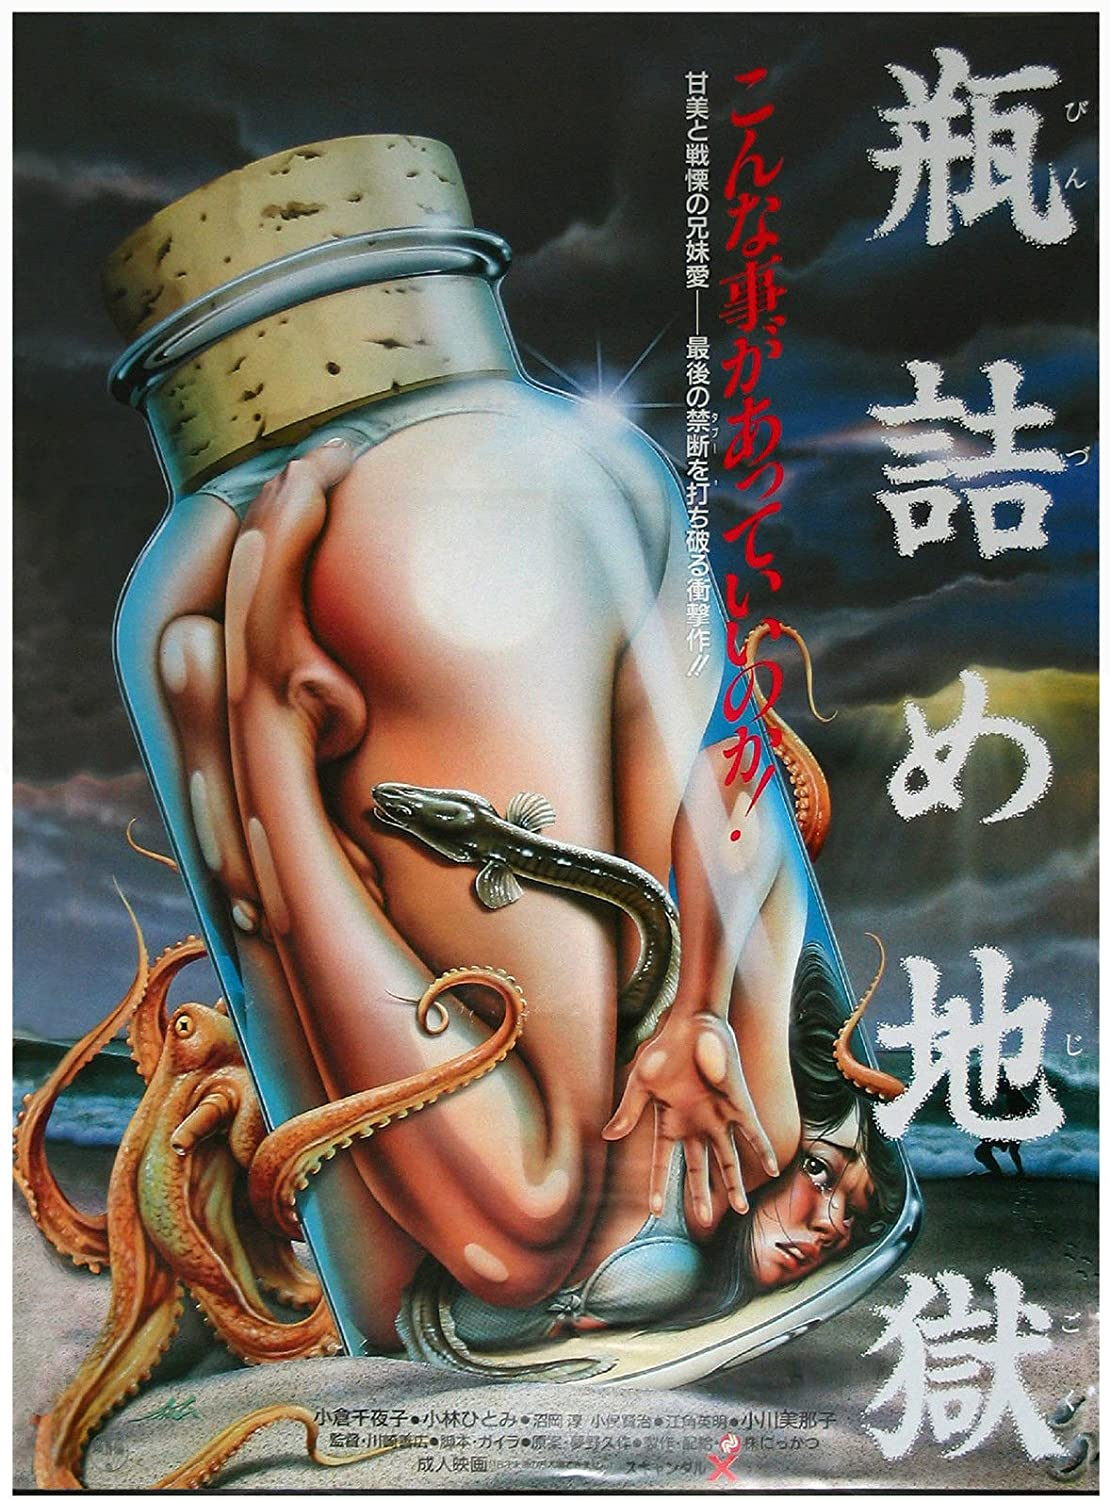 HELL IN BOTTLES Movie POSTER Japanese Horror Rare HP Lovecraft 24x36inch